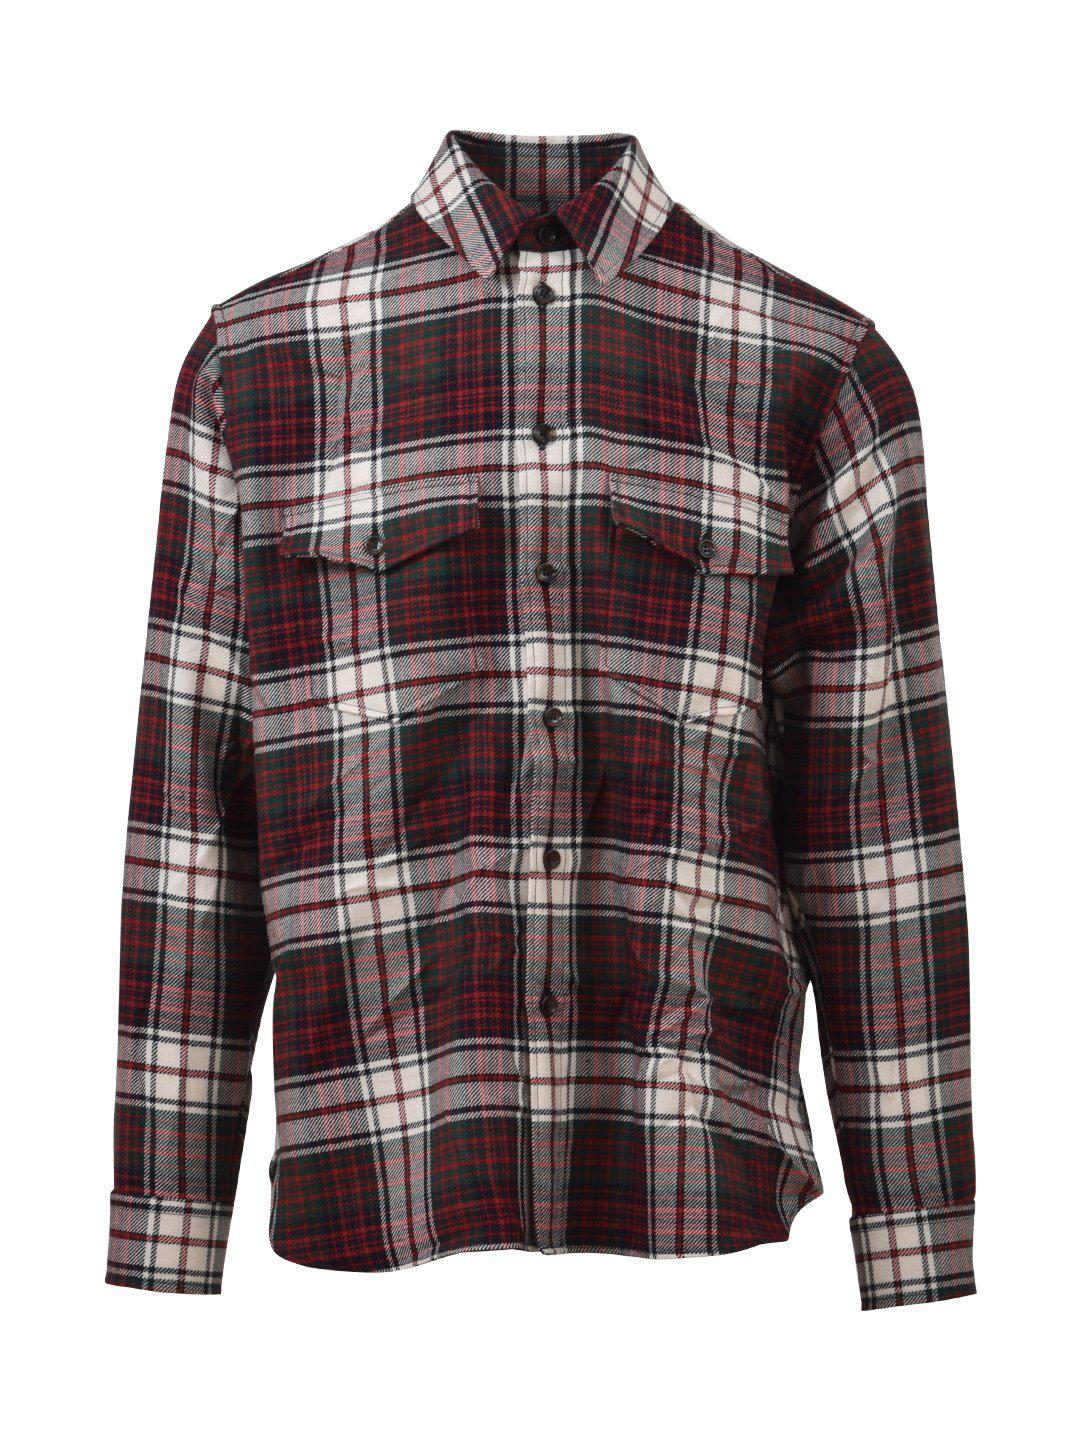 0637267a Gucci Plaid Shirt in Red for Men - Lyst